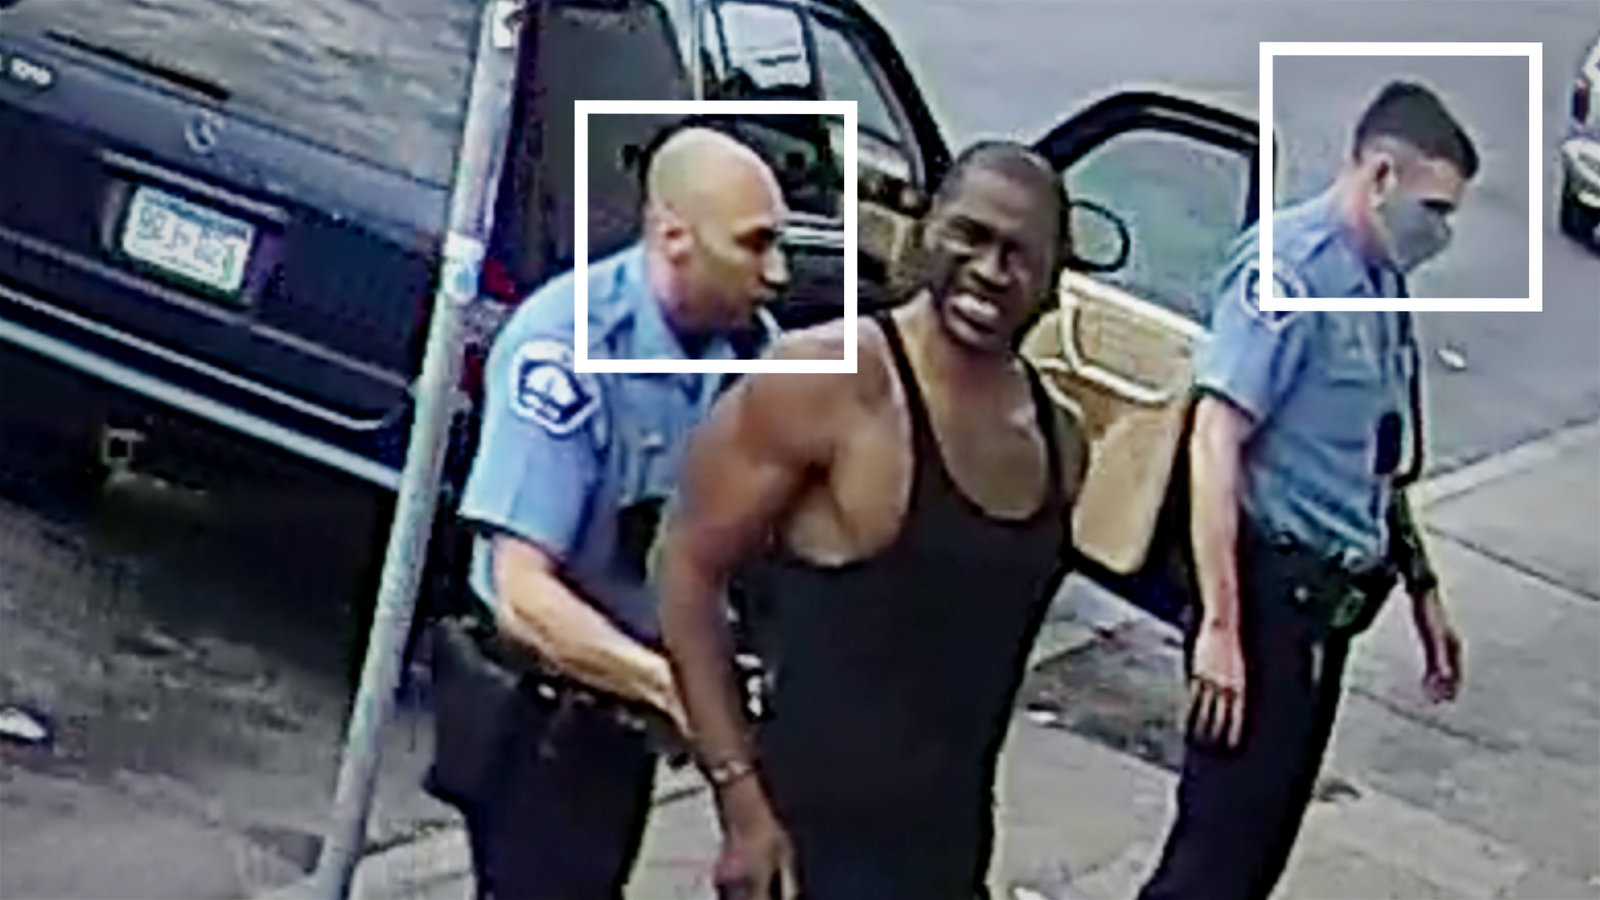 The Source |Newly Surfaced Video Footage Shows Cops ...